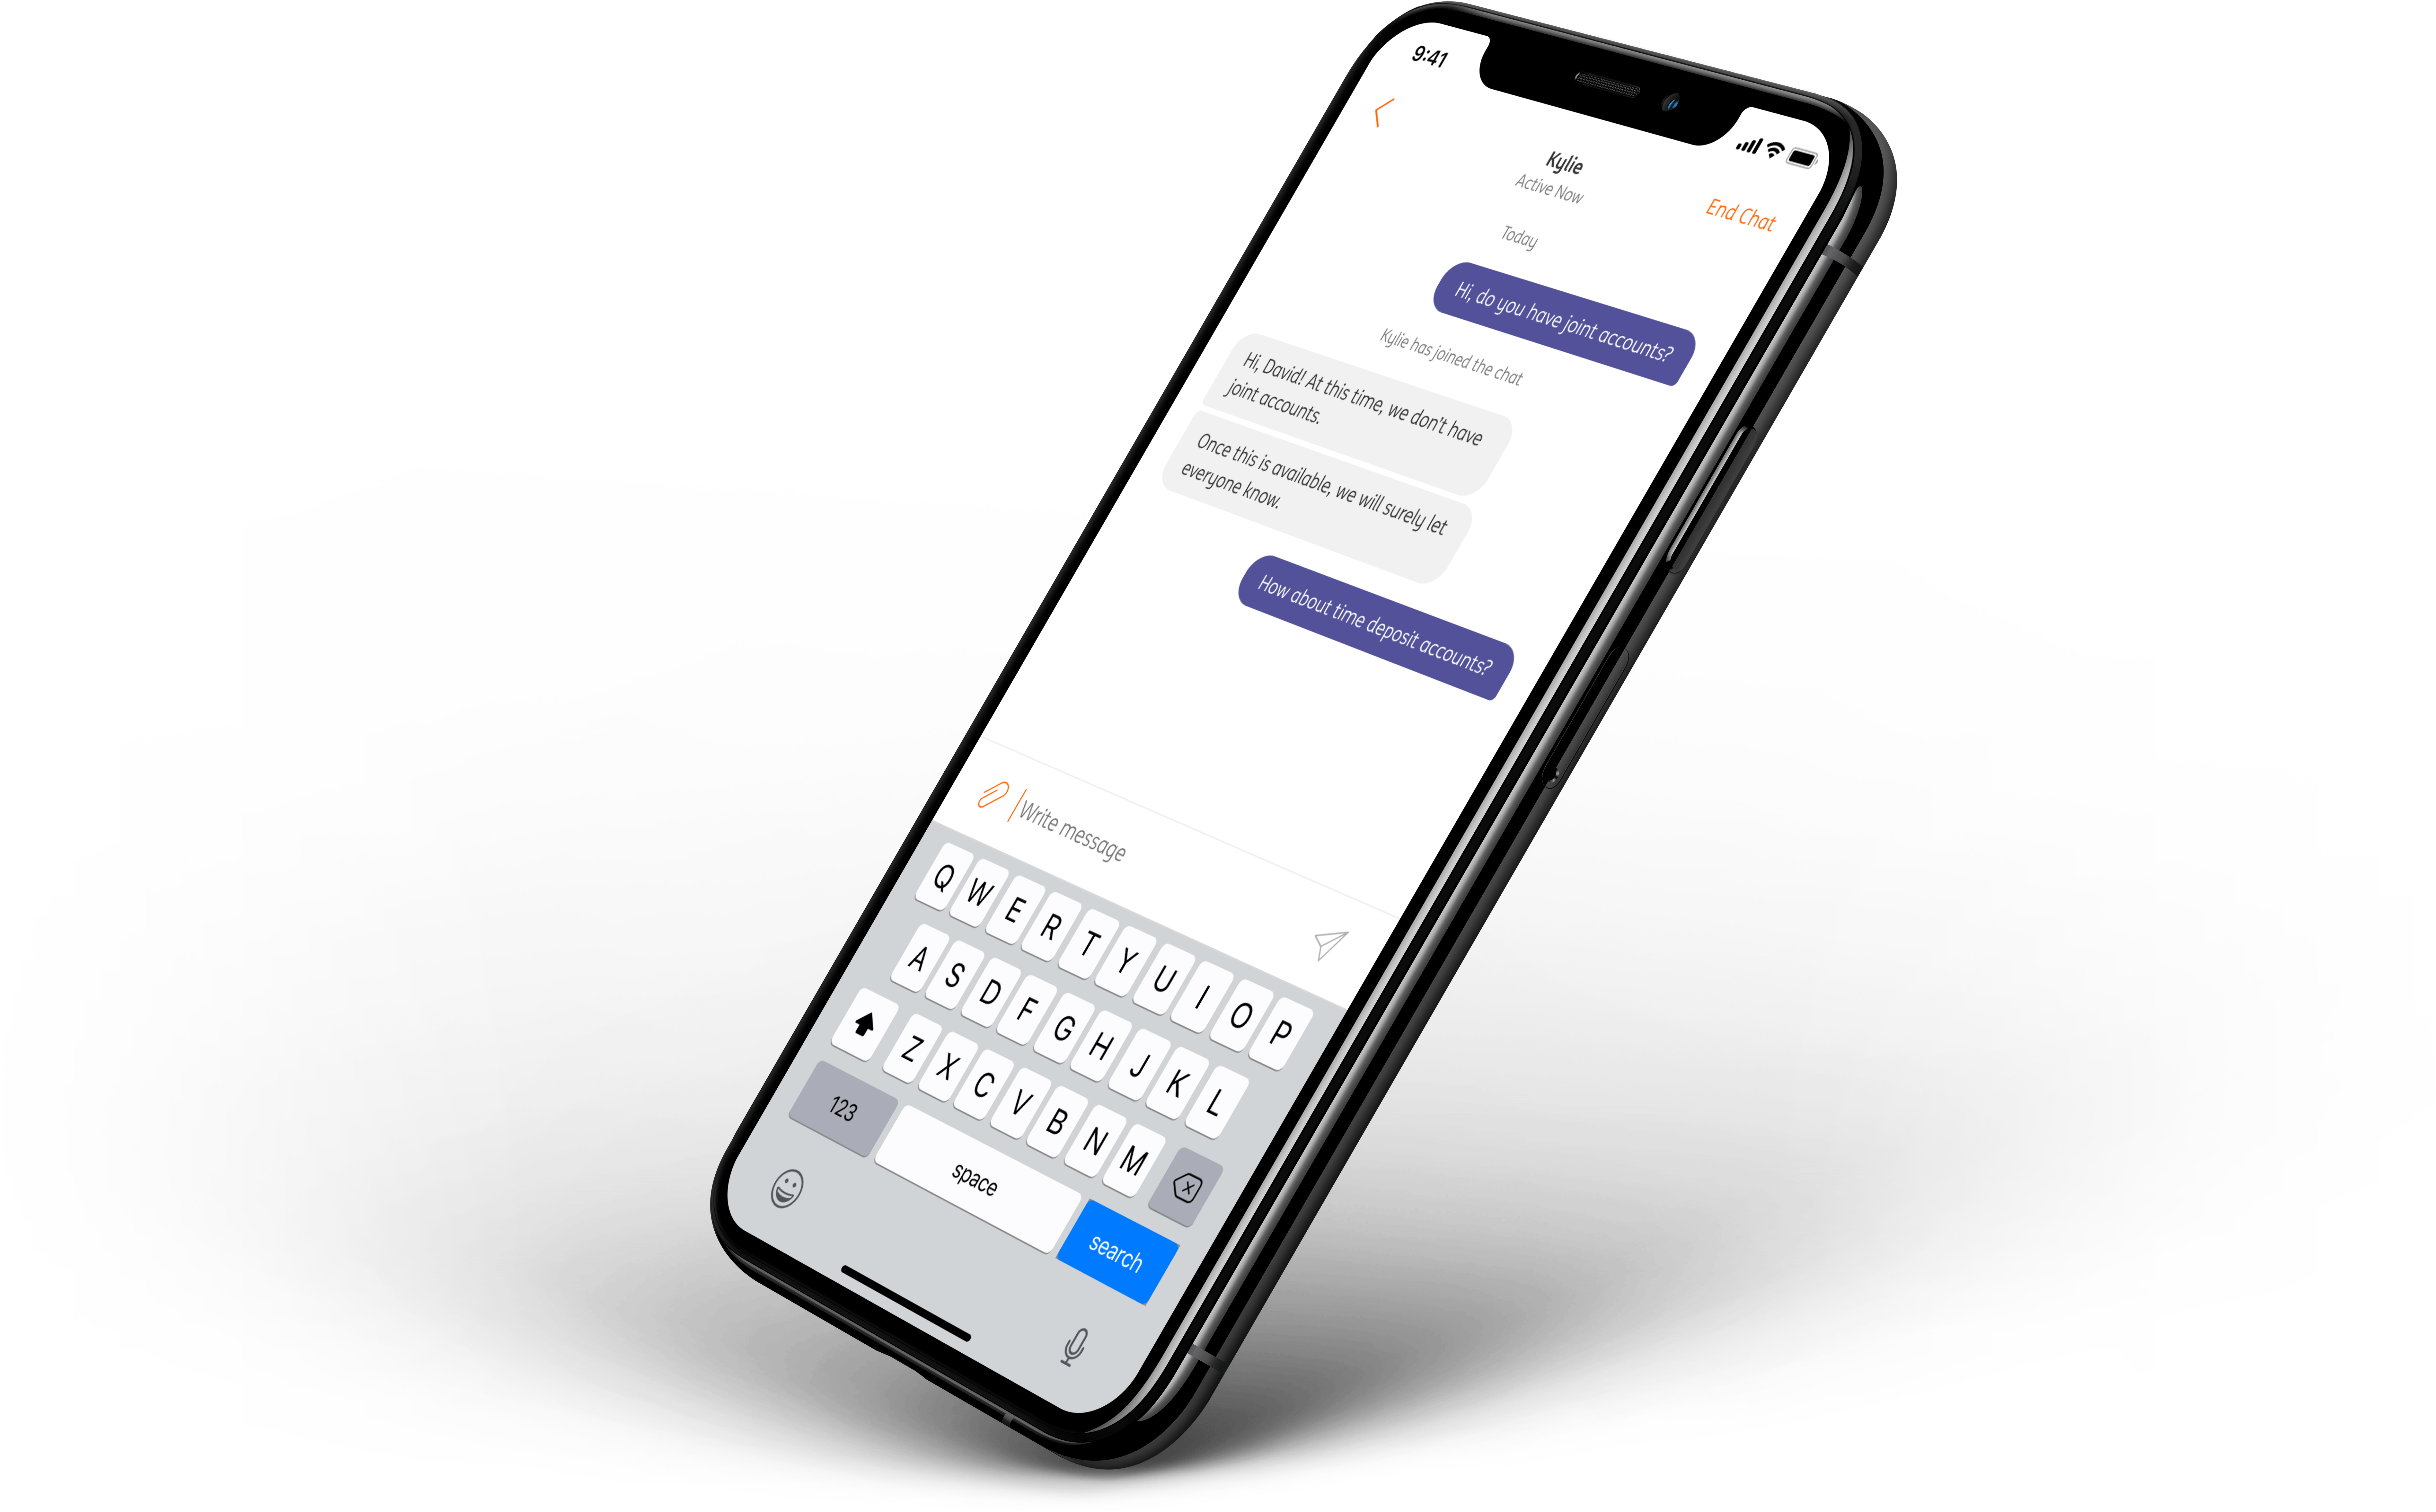 ING Chat in an iPhone